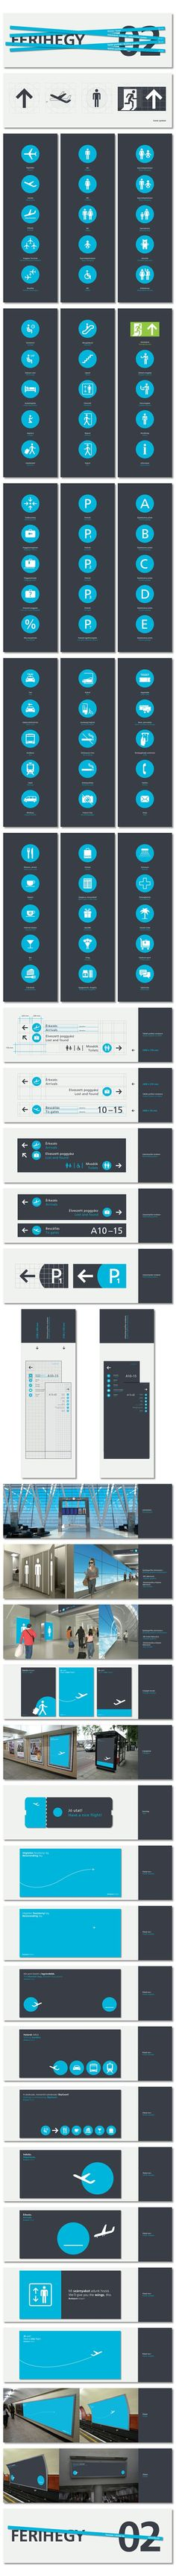 WAYFINDING SYSTEM, AIRPORT, BUD Terminal2 Signage, by Kiss Miklos